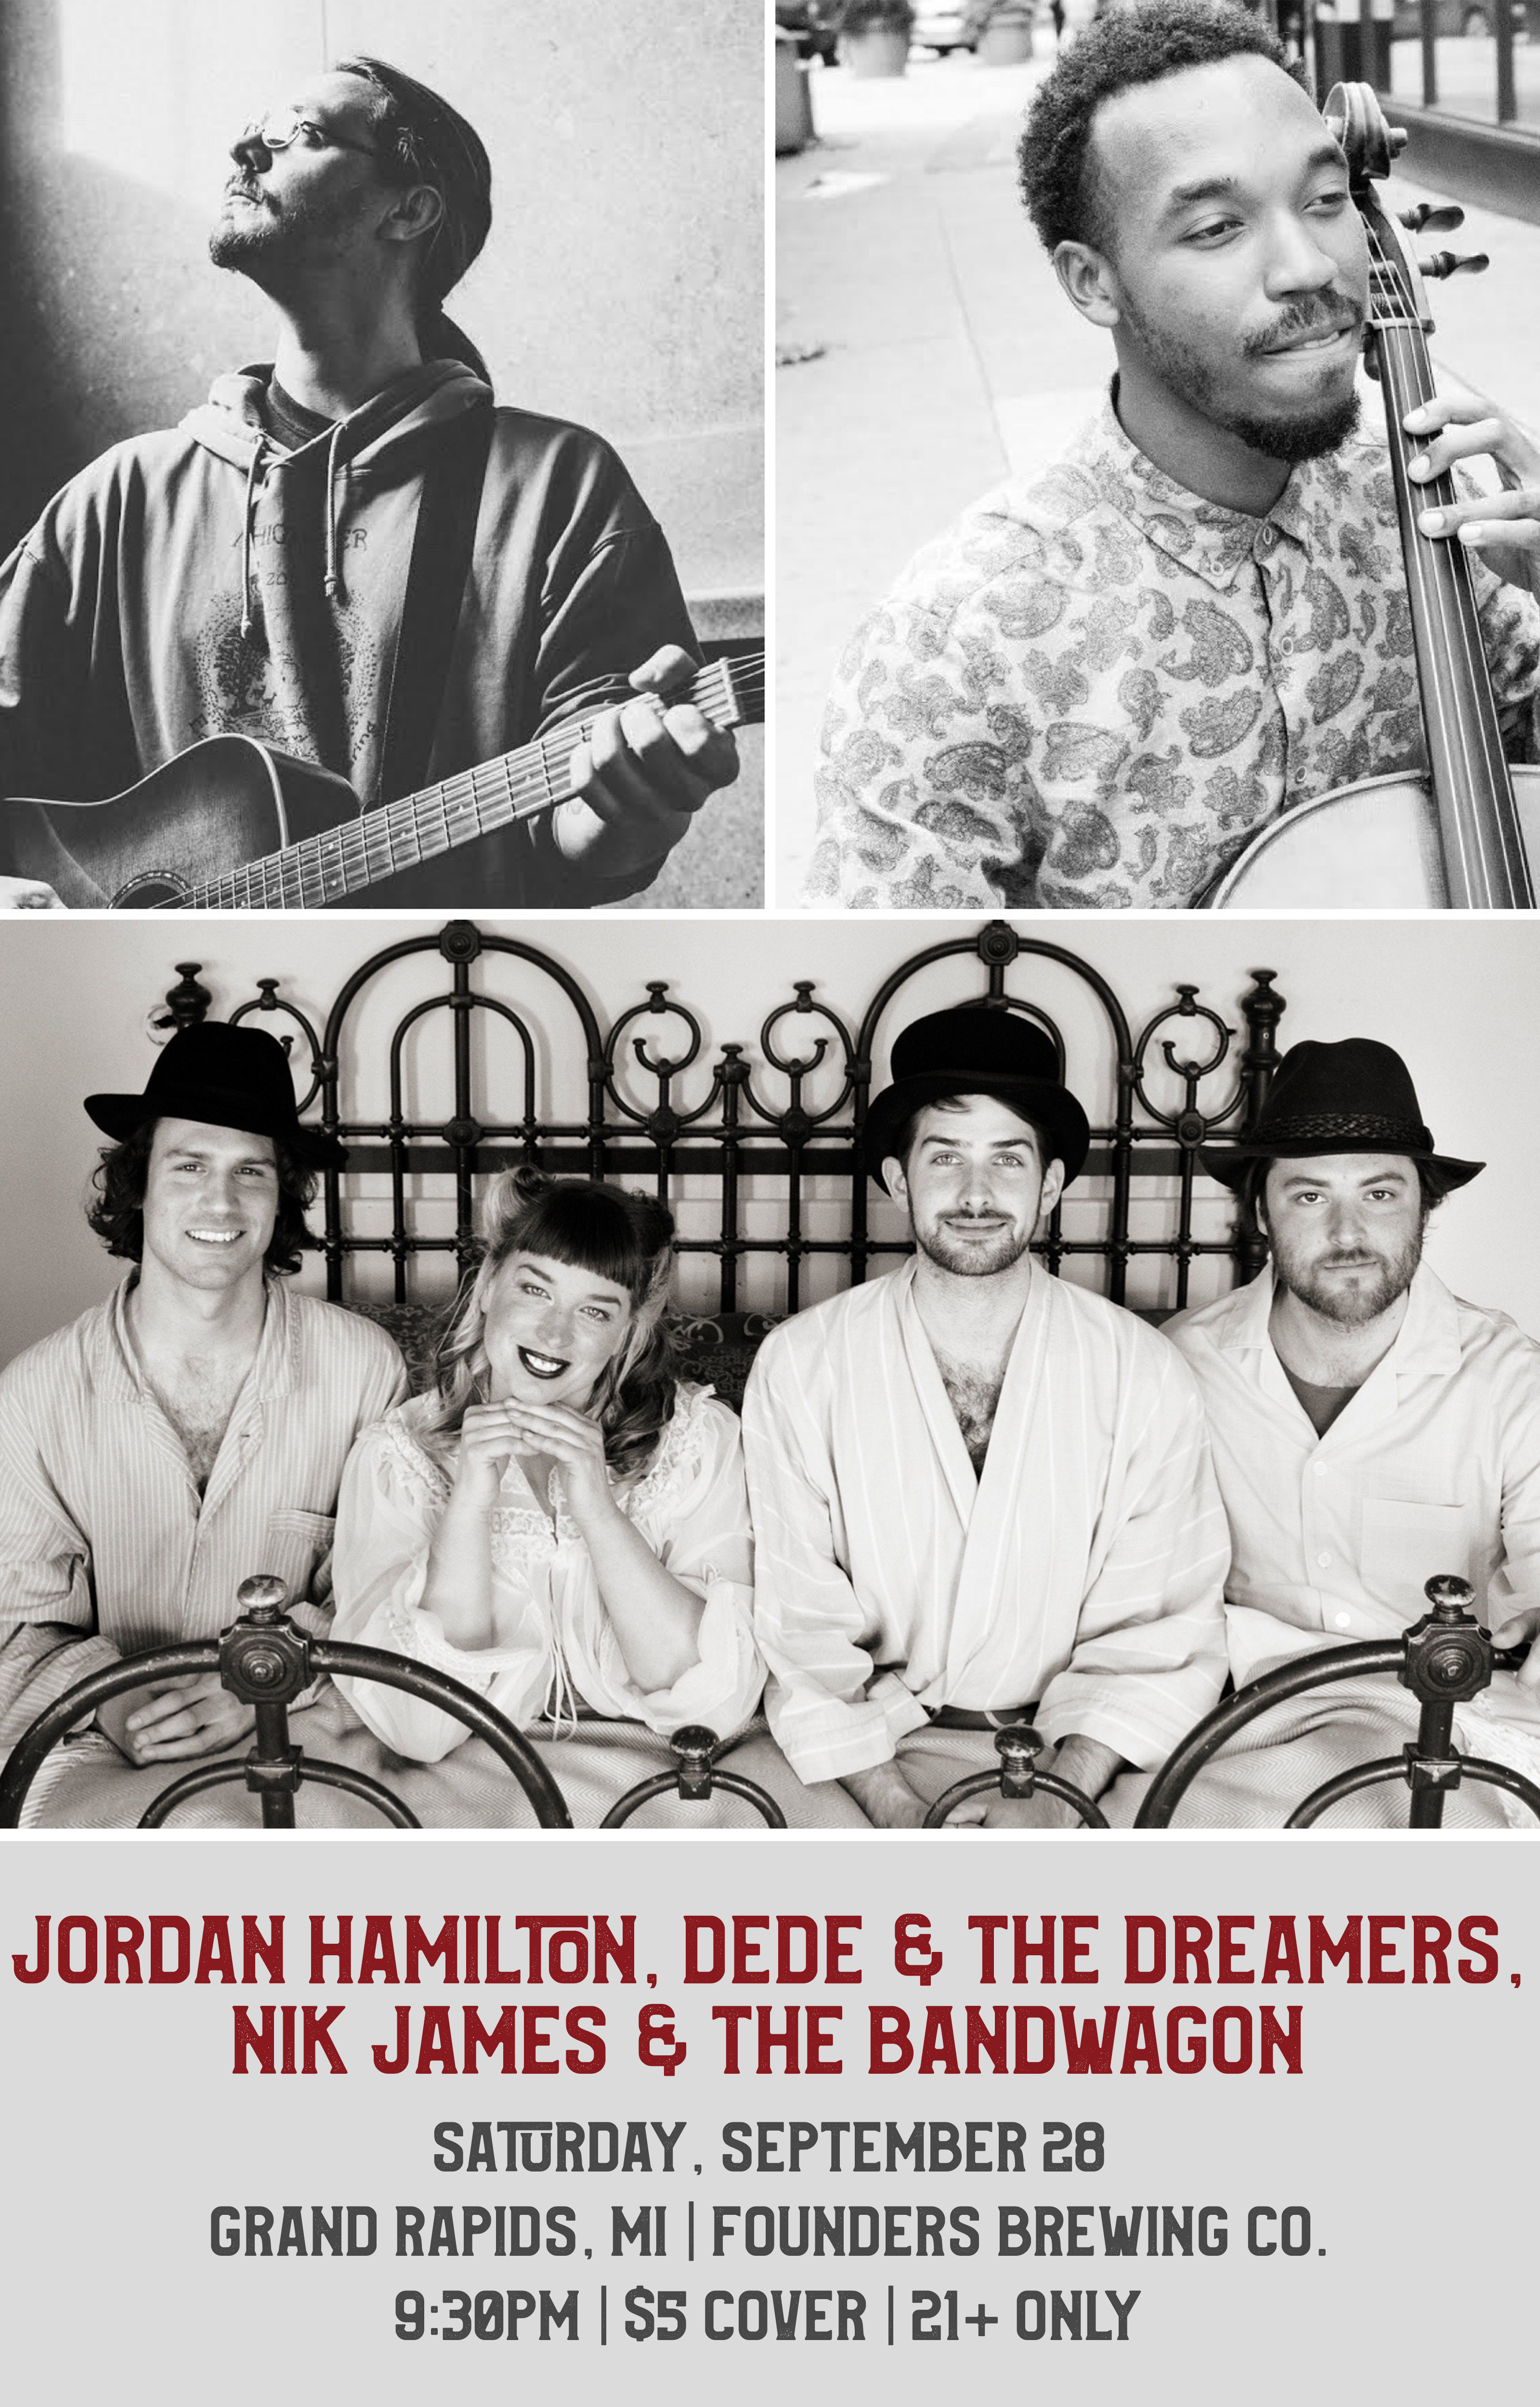 Dede & The Dreamers event poster hosted by Founders Brewing Co.